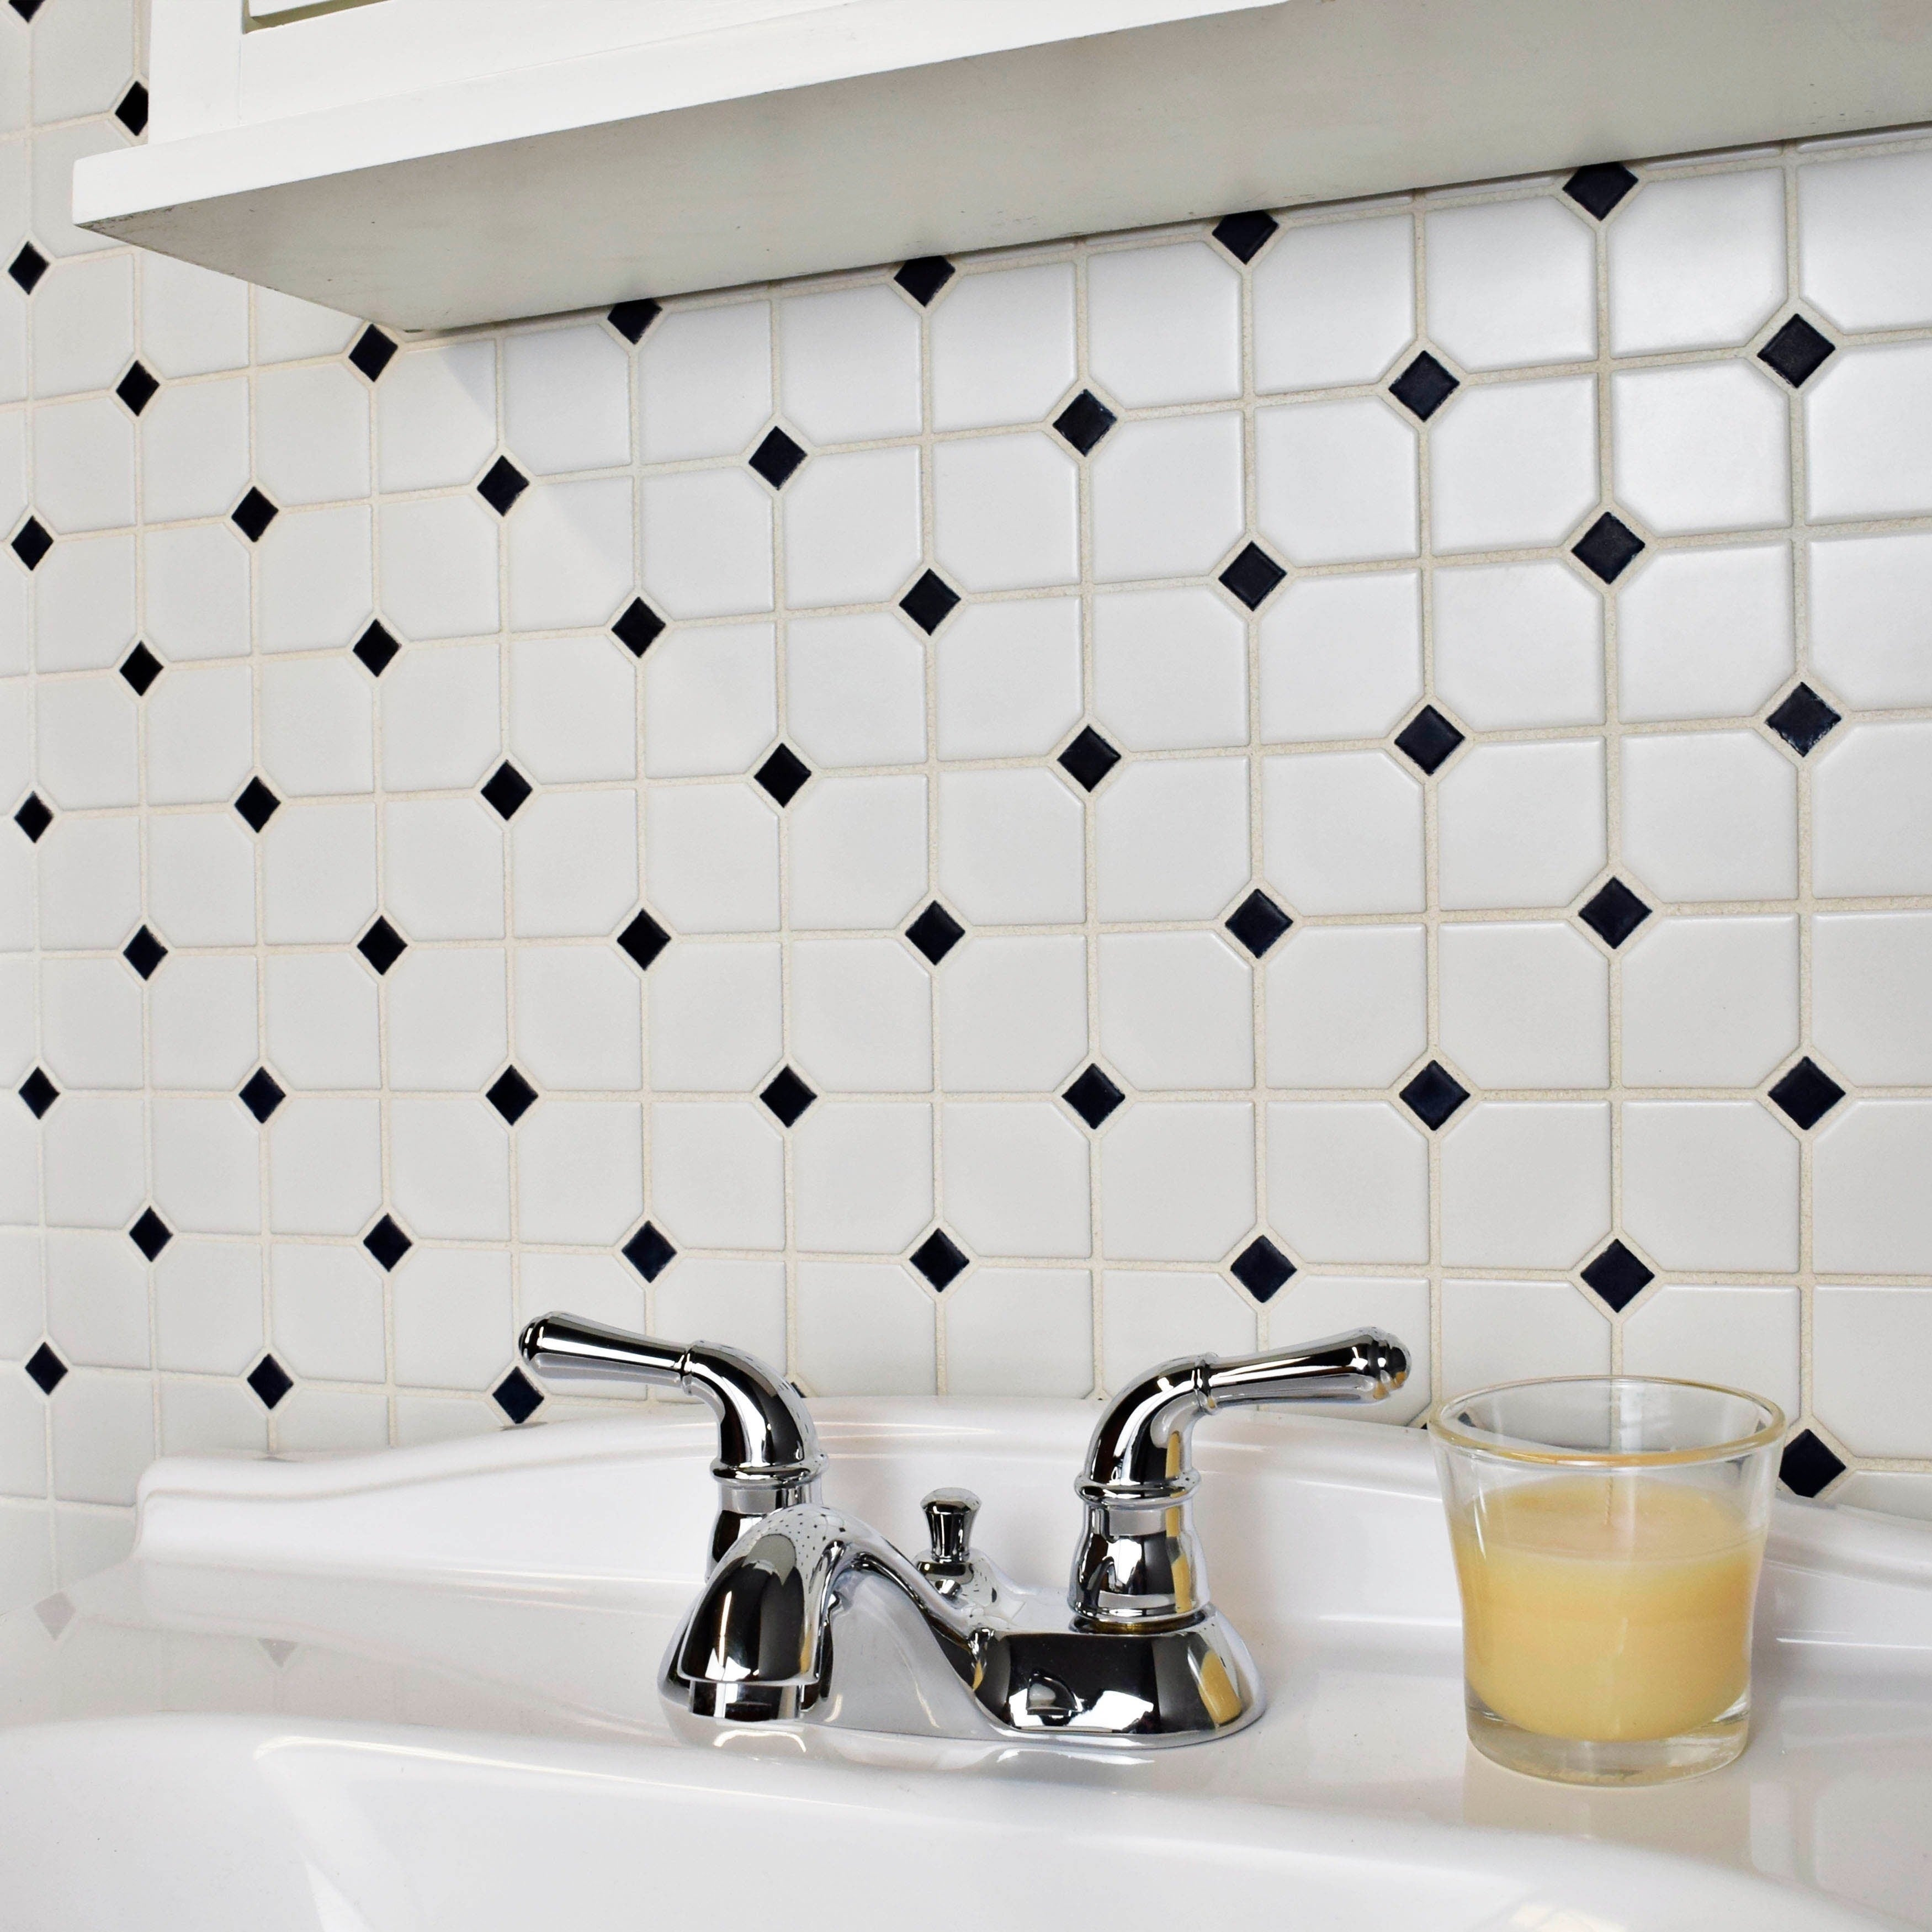 SomerTile 11.75x11.75-inch Victorian Broadway Matte White and Black ...